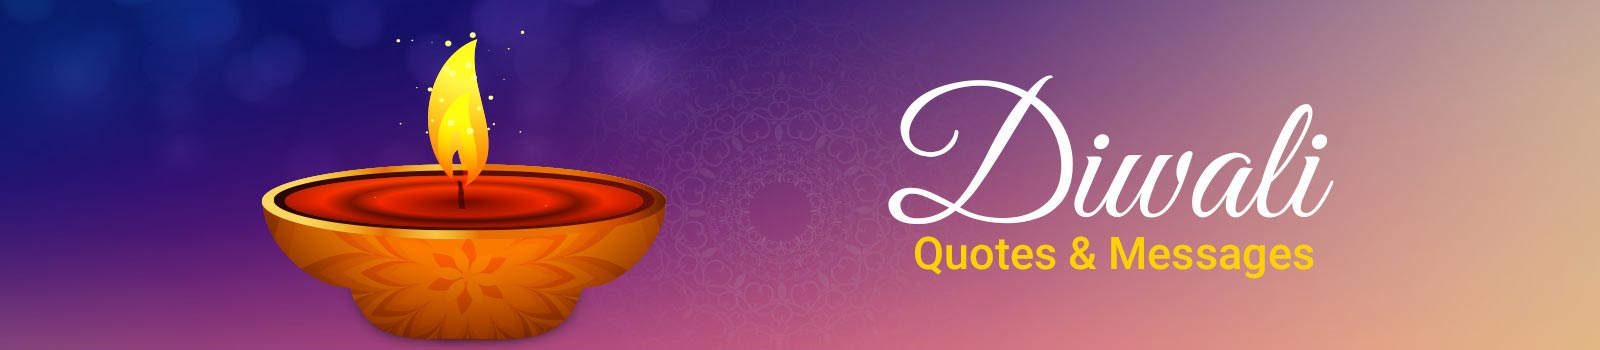 Diwali Quotes and Messages